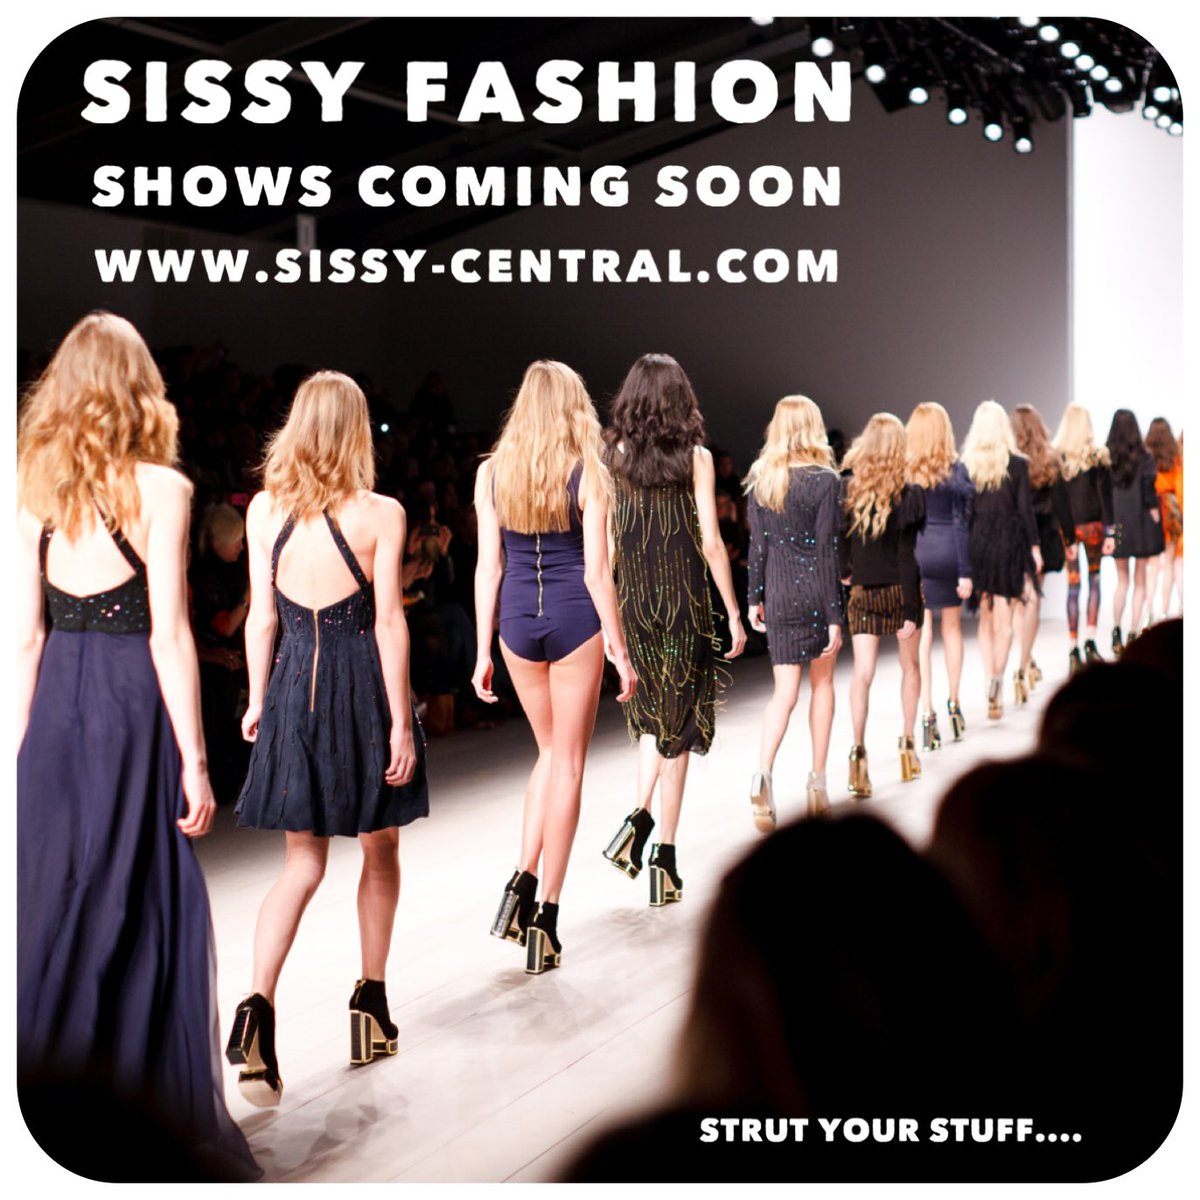 New coming soon real live fashion shows to take part in/watch #femdom #sissy #sissification #womenrule @rt_goddess @Sissy_School @sissify @SissyTrainers @ExposeSissy @SissyRetreat @SissySchoolX @faggot_sissy @sissyhypnosis @RTslave93 @rtdumb @RTsissyloser @DommeDaily @promoslave <br>http://pic.twitter.com/UKNdHIOvgV